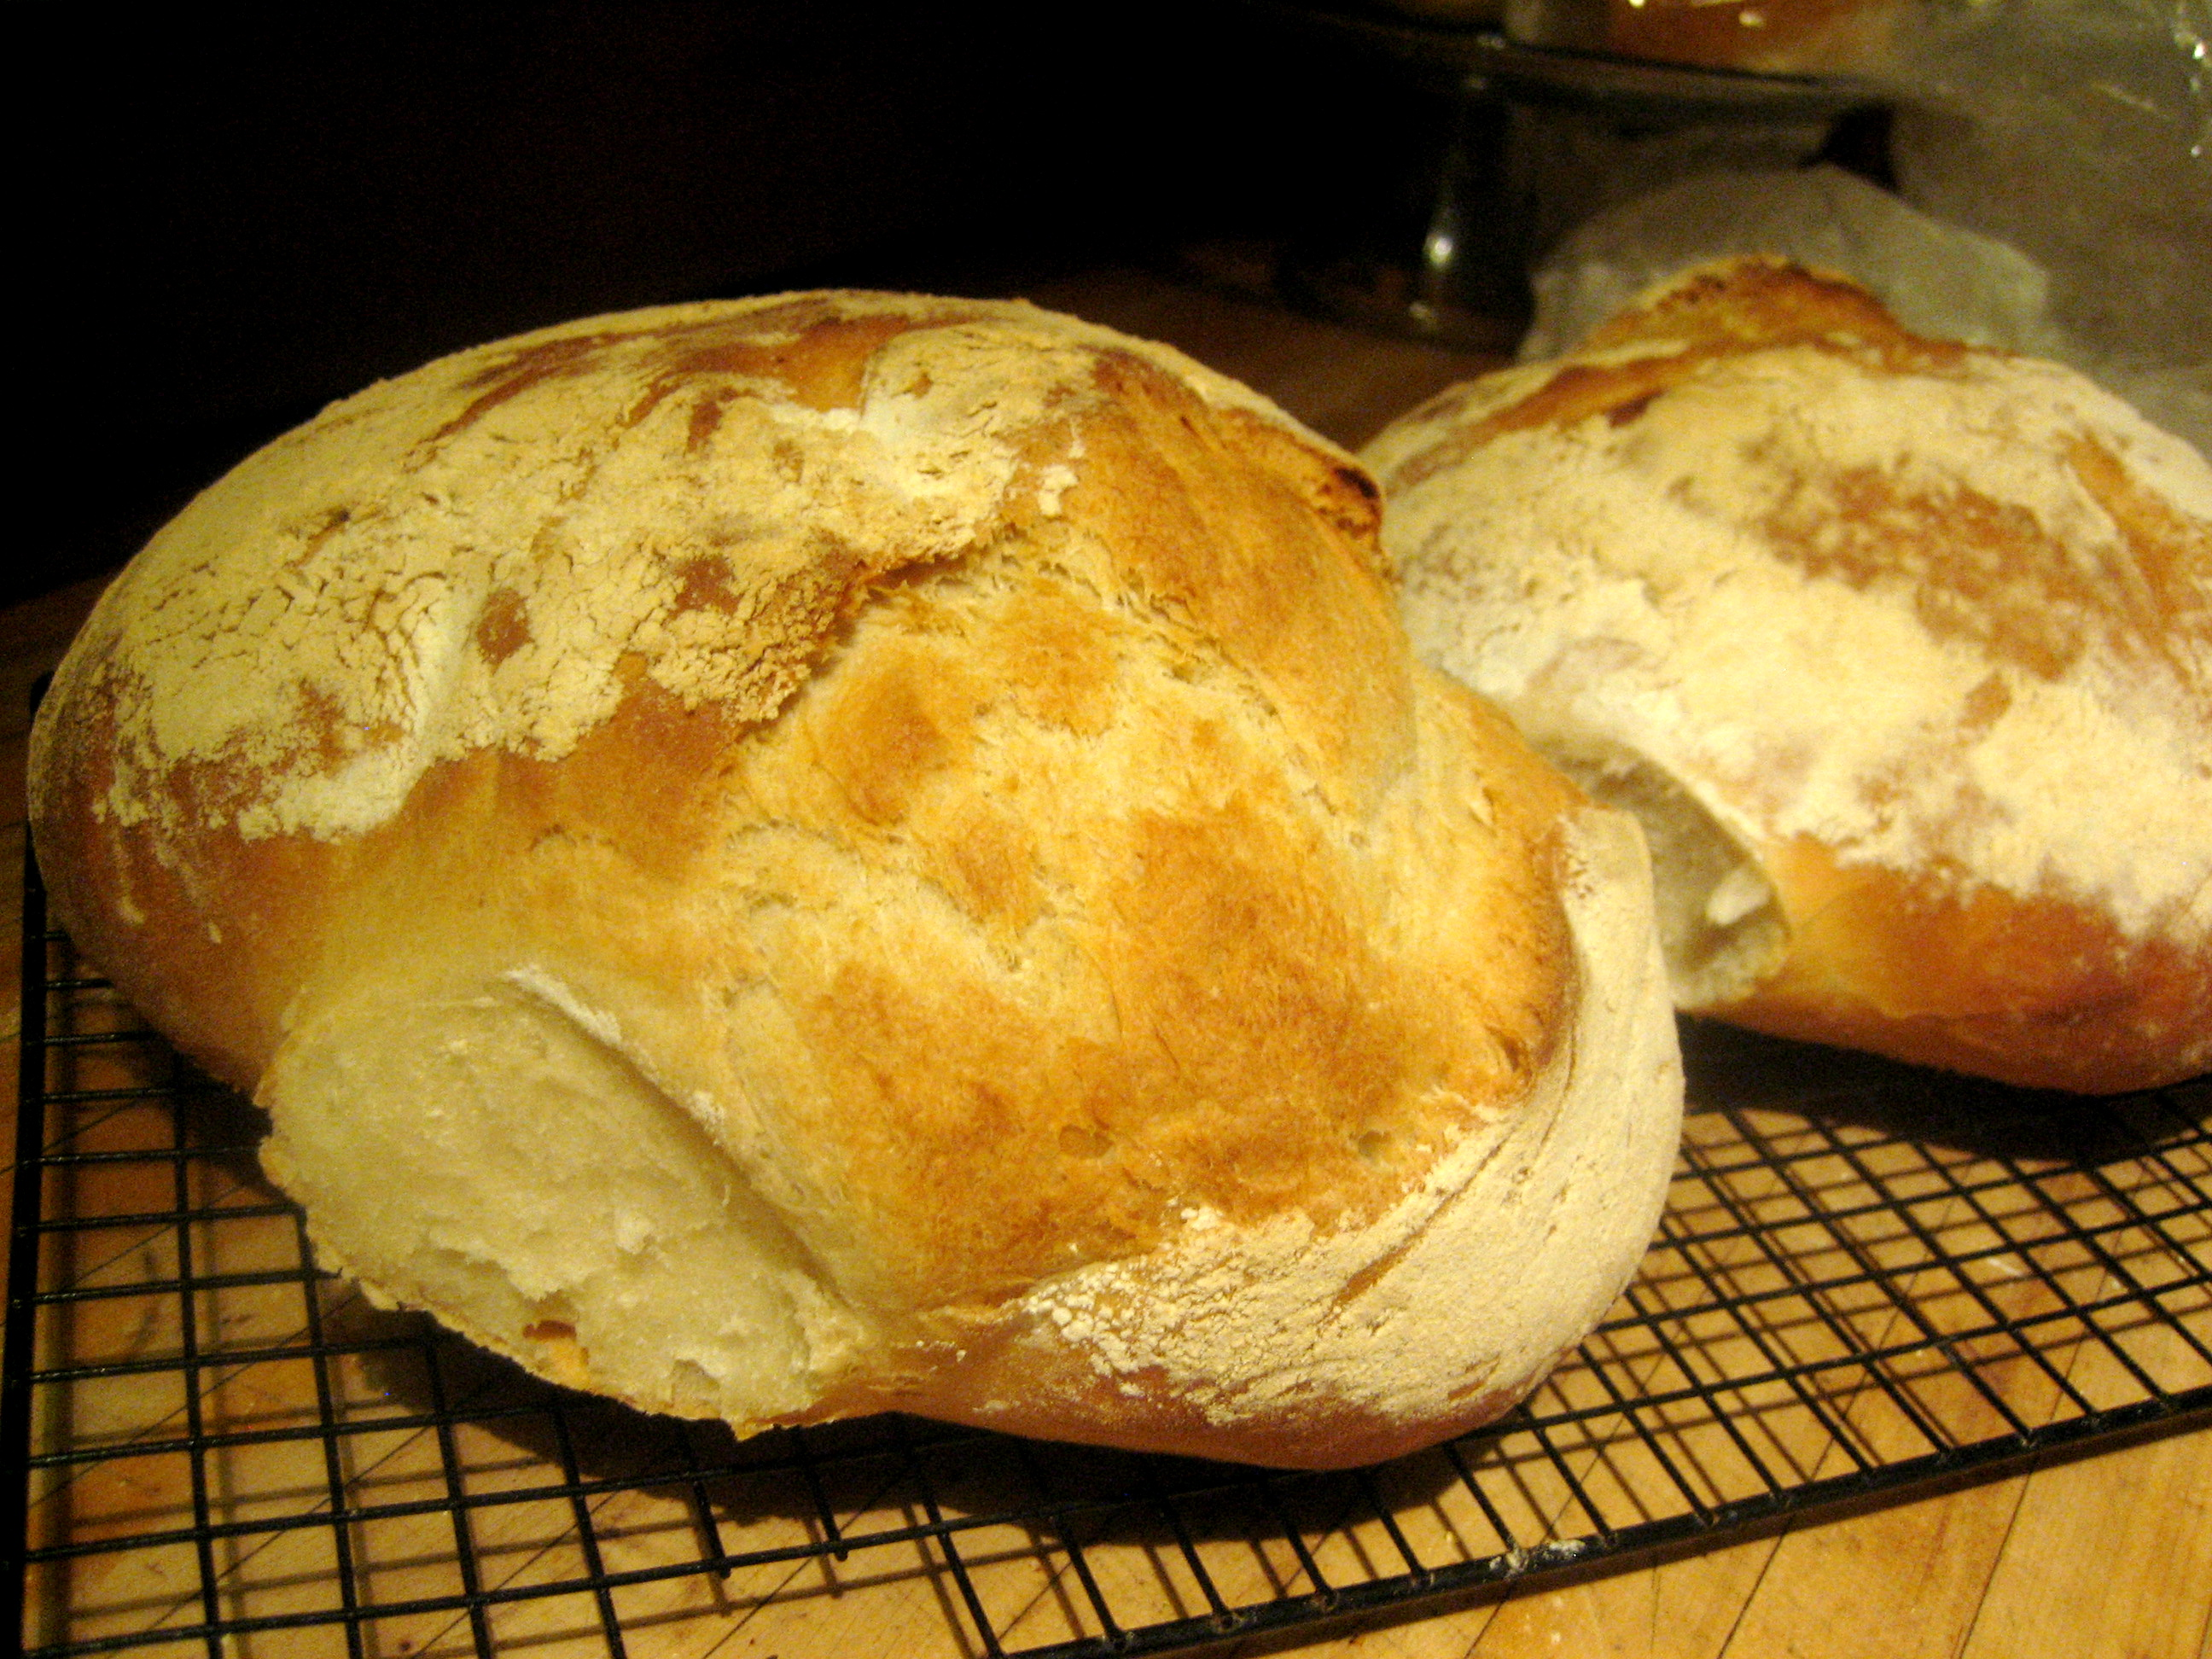 How To Jump A Starter >> File:Two loaves of pagnotta made with a biga, or starter dough. heavenly..jpg - Wikimedia Commons